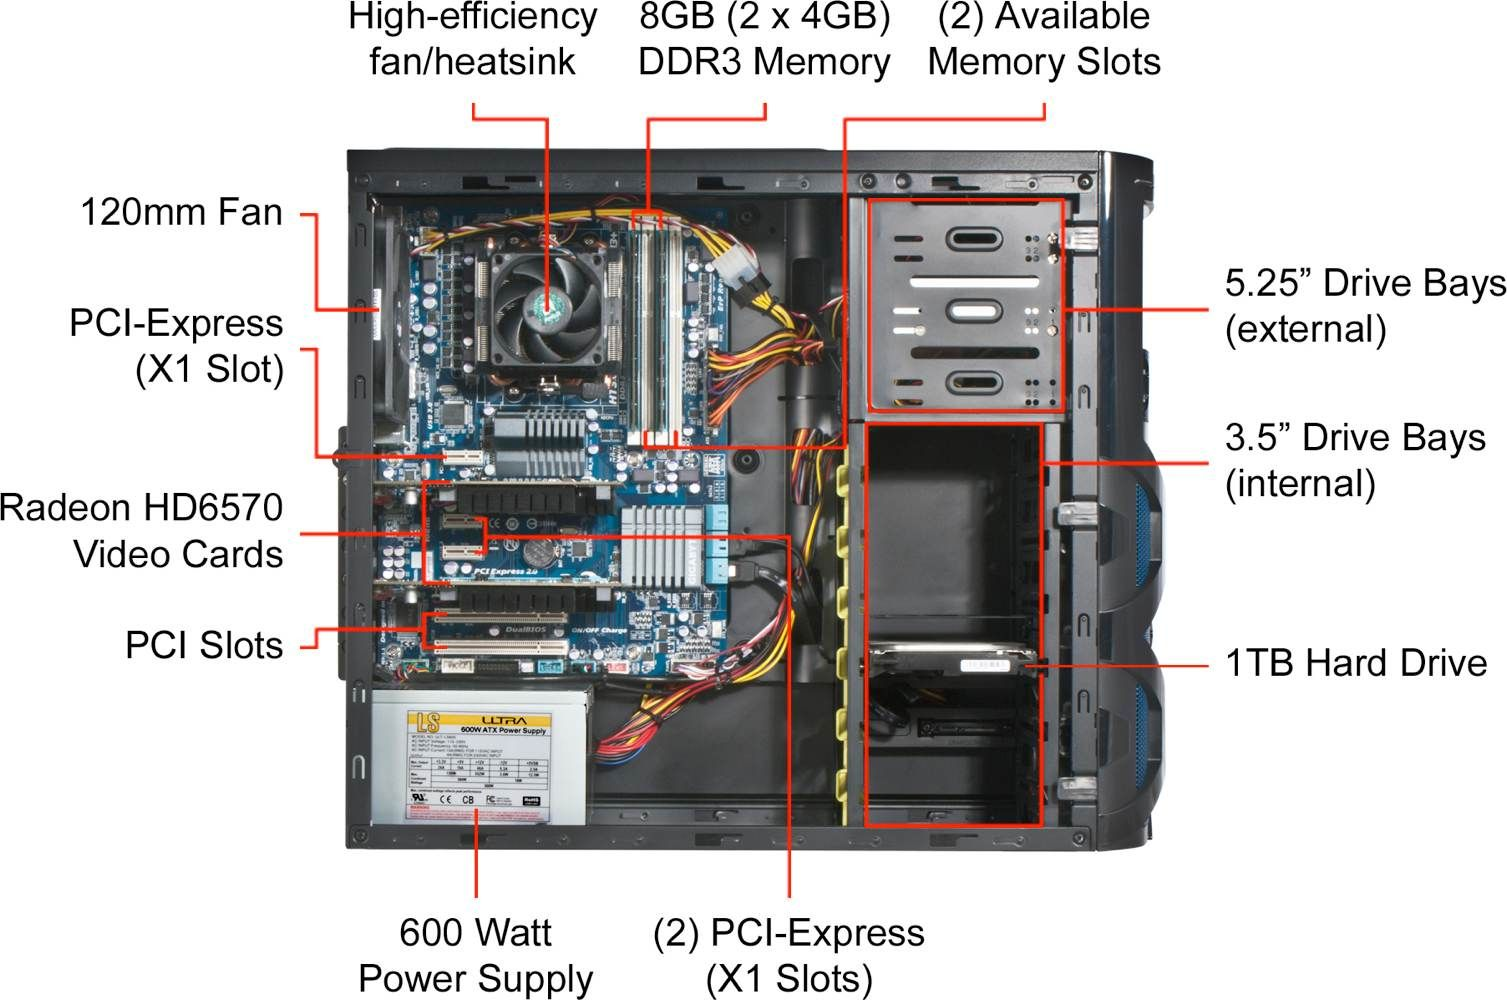 ps3 fan wiring diagram ps3 air flow diagram wiring diagram